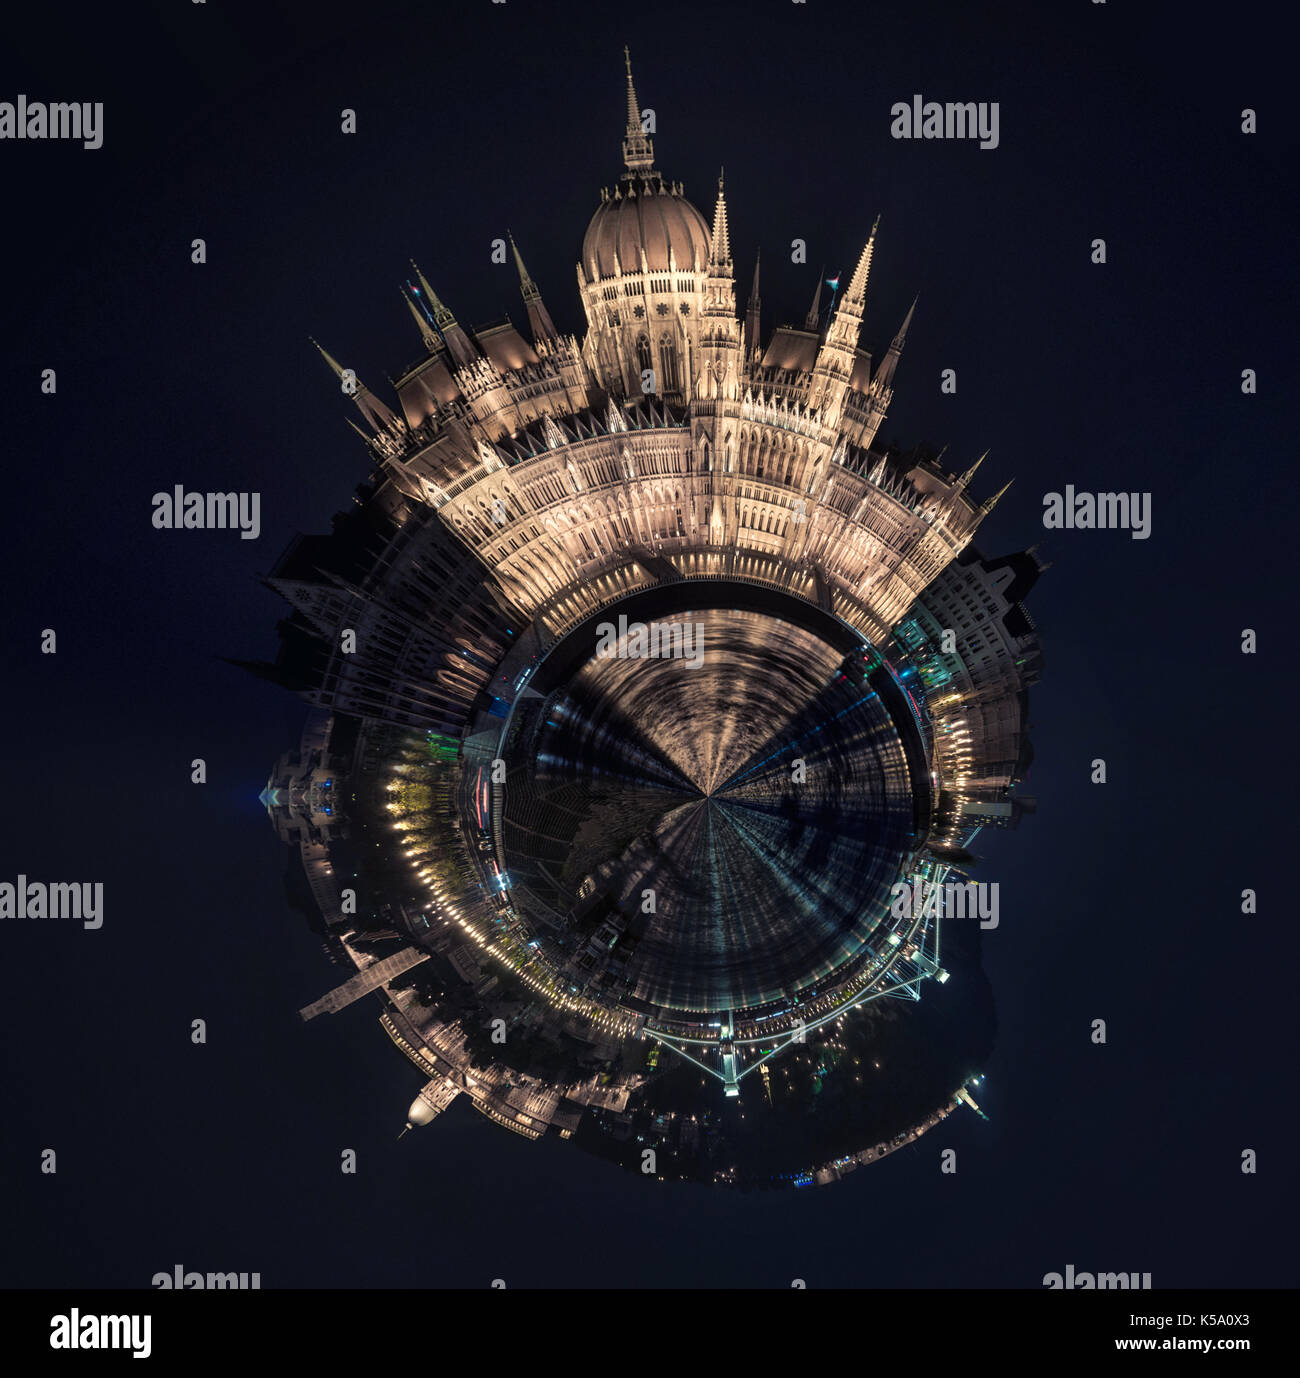 Little planet 360 degree sphere. Panorama of Budapest city at night. Hungary - Stock Image